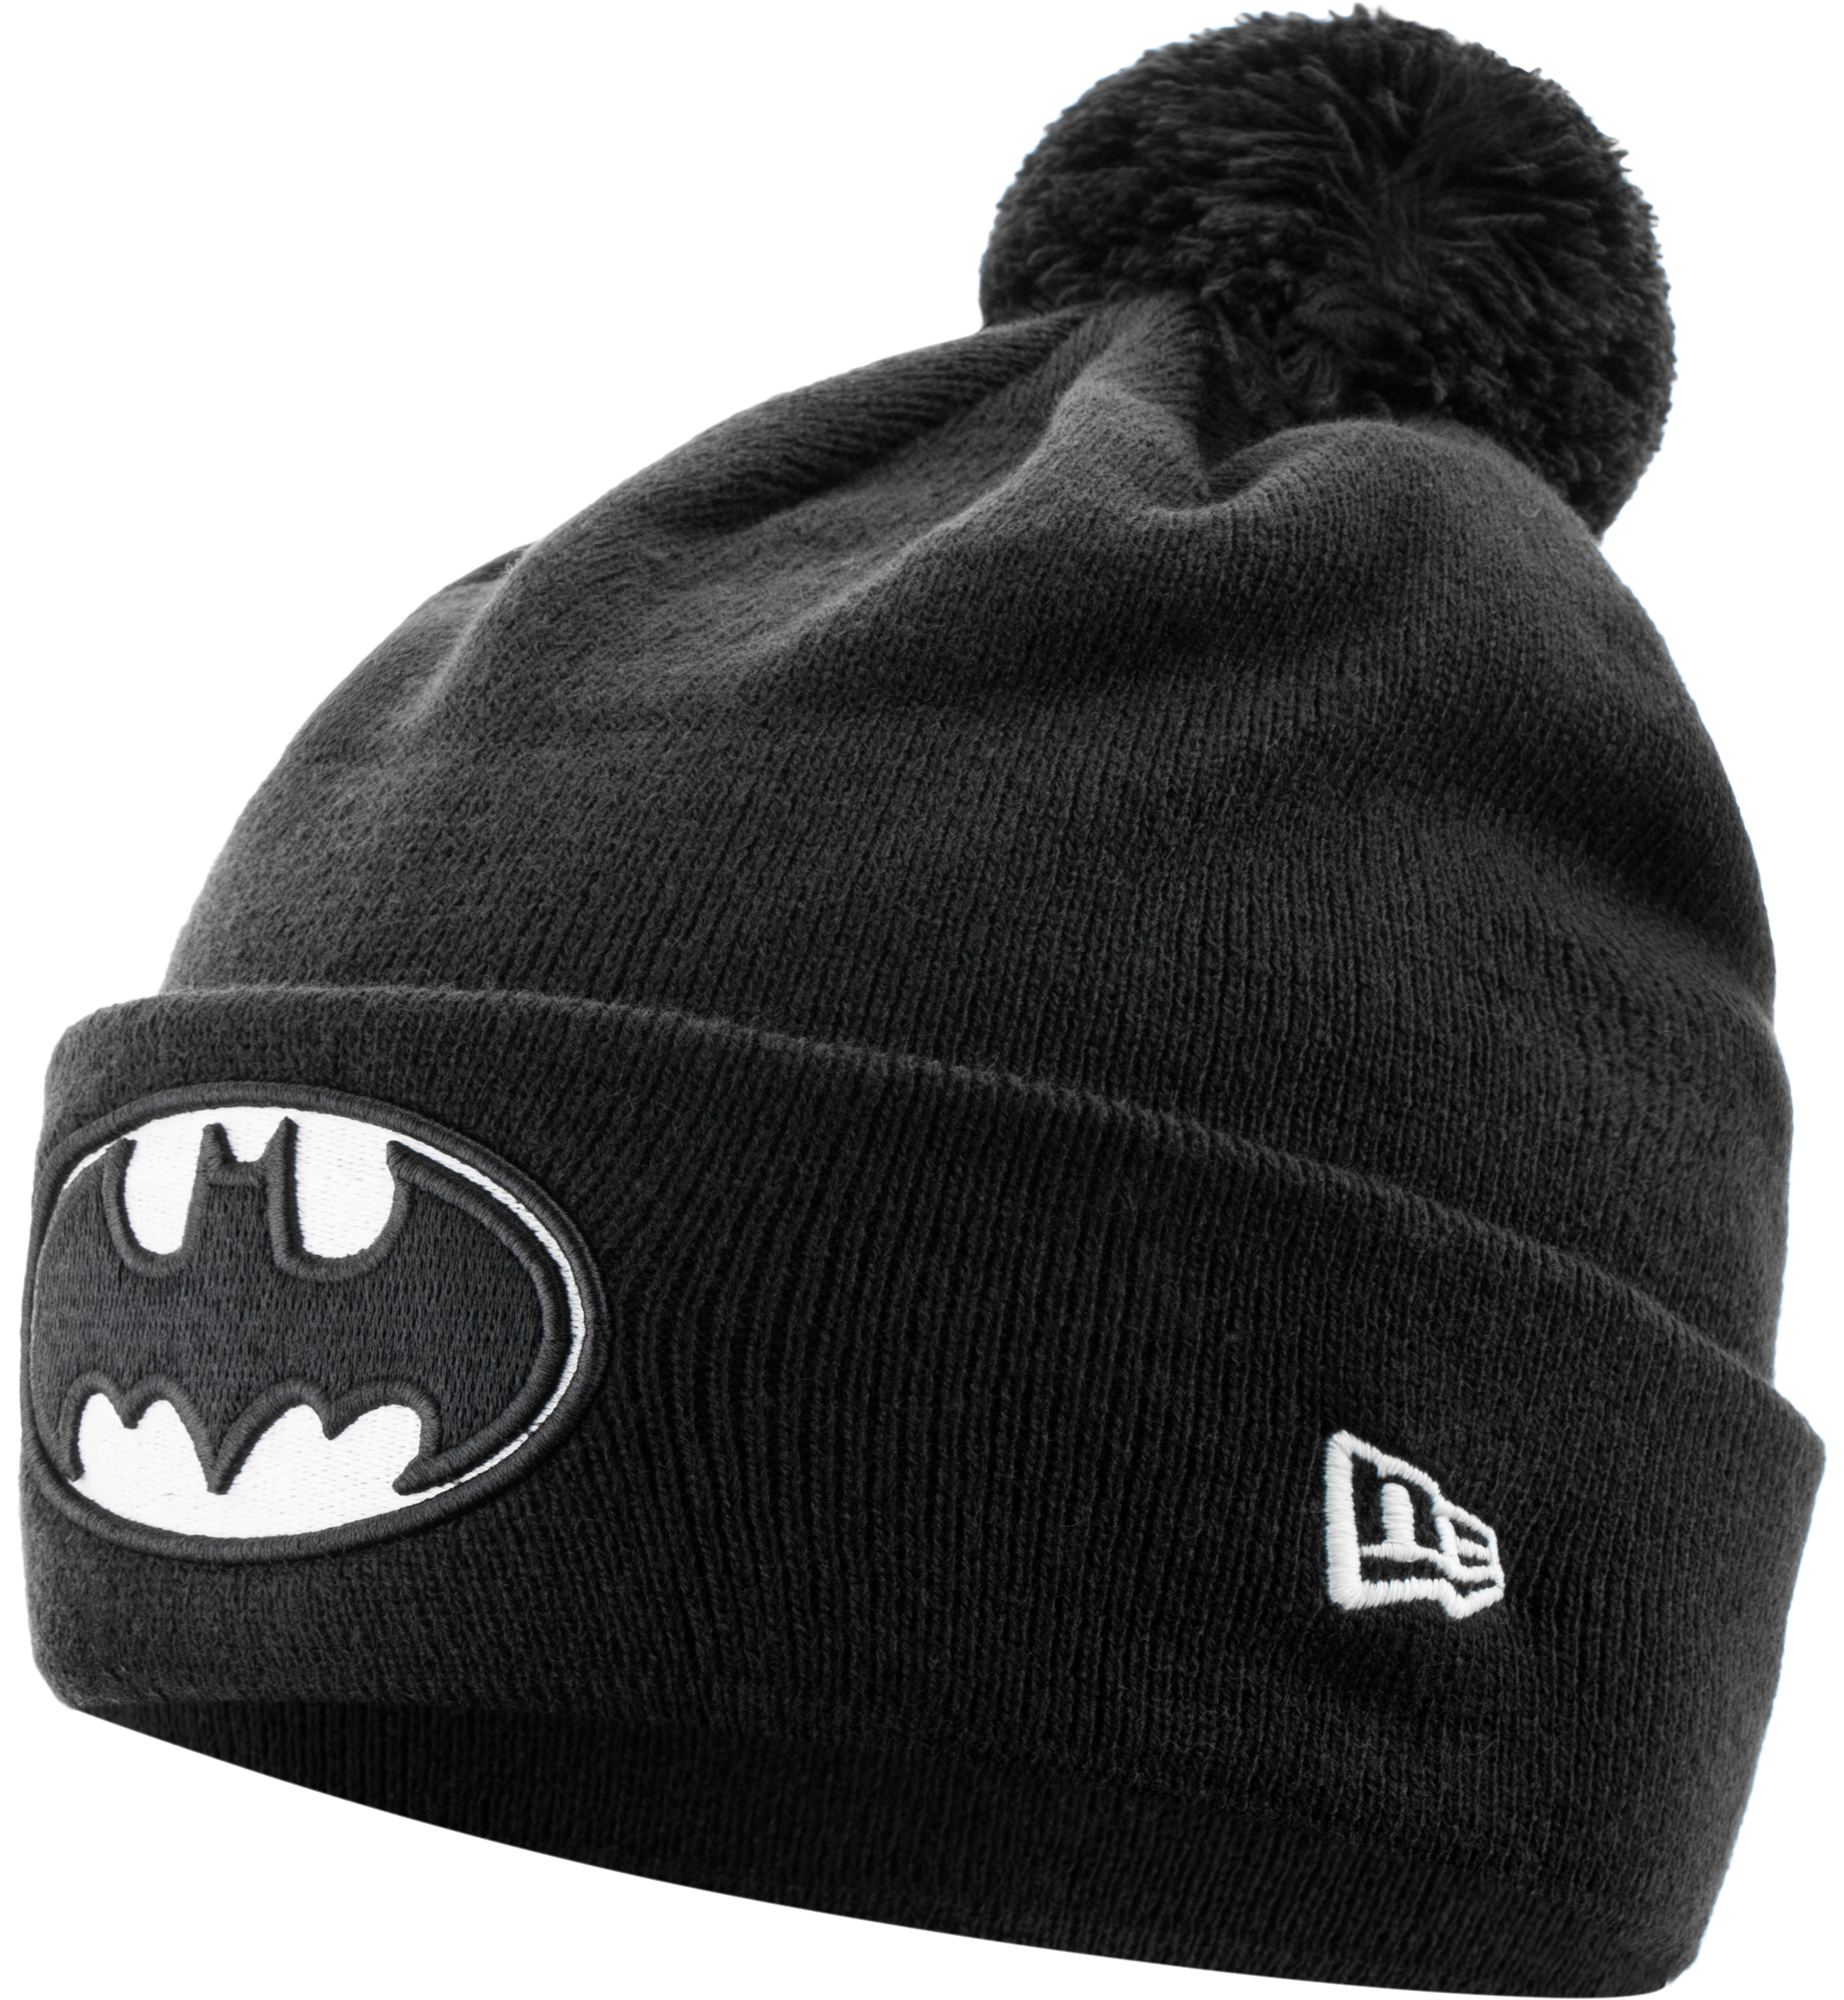 New Era Шапка New Era Cuff Bobble Batman new era шапка для мальчиков new era ne cuff pom размер 54 55